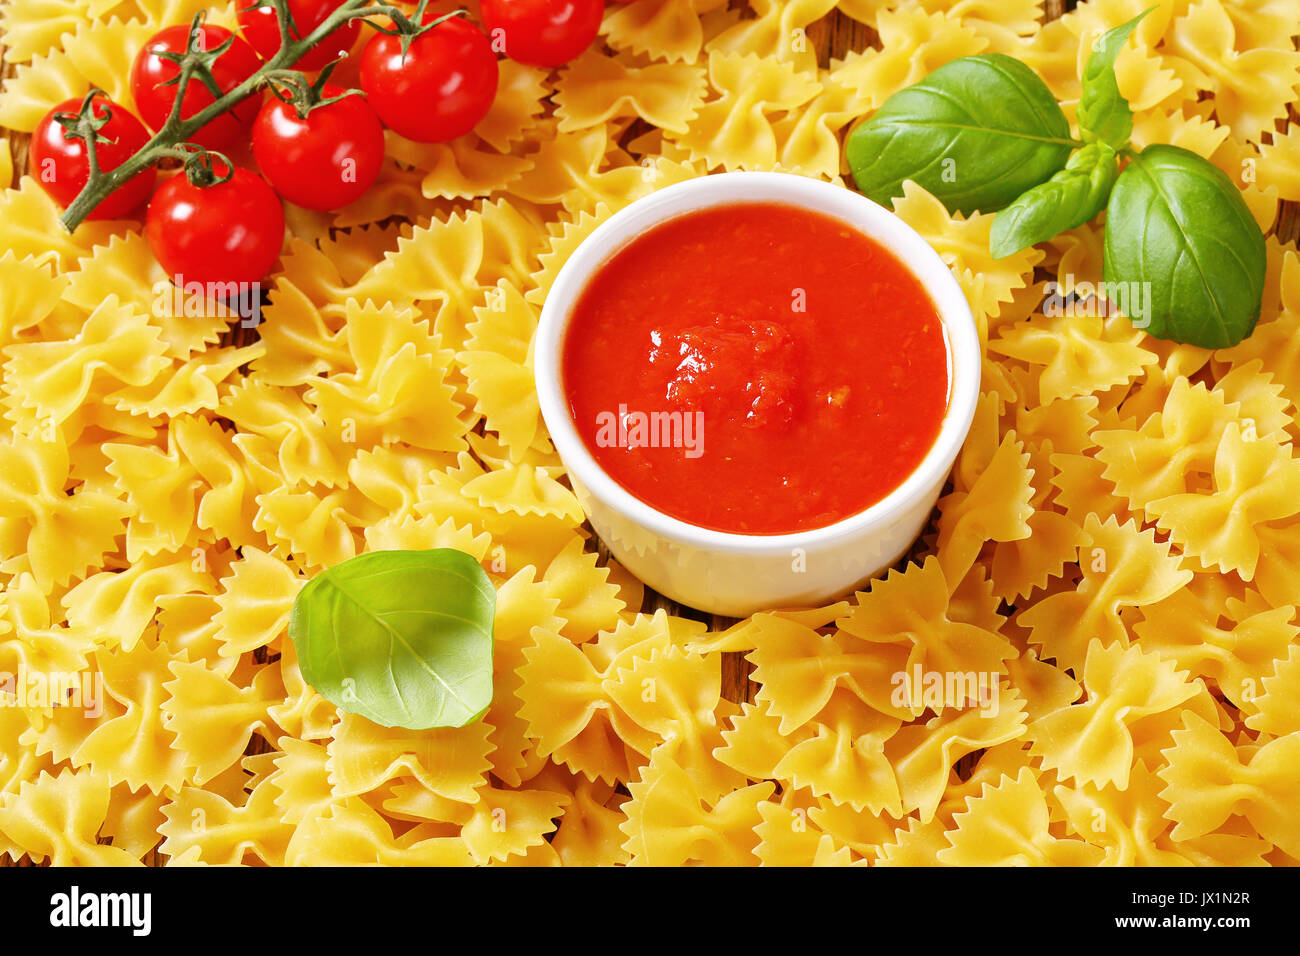 Uncooked bow tie pasta with tomato sauce - Stock Image